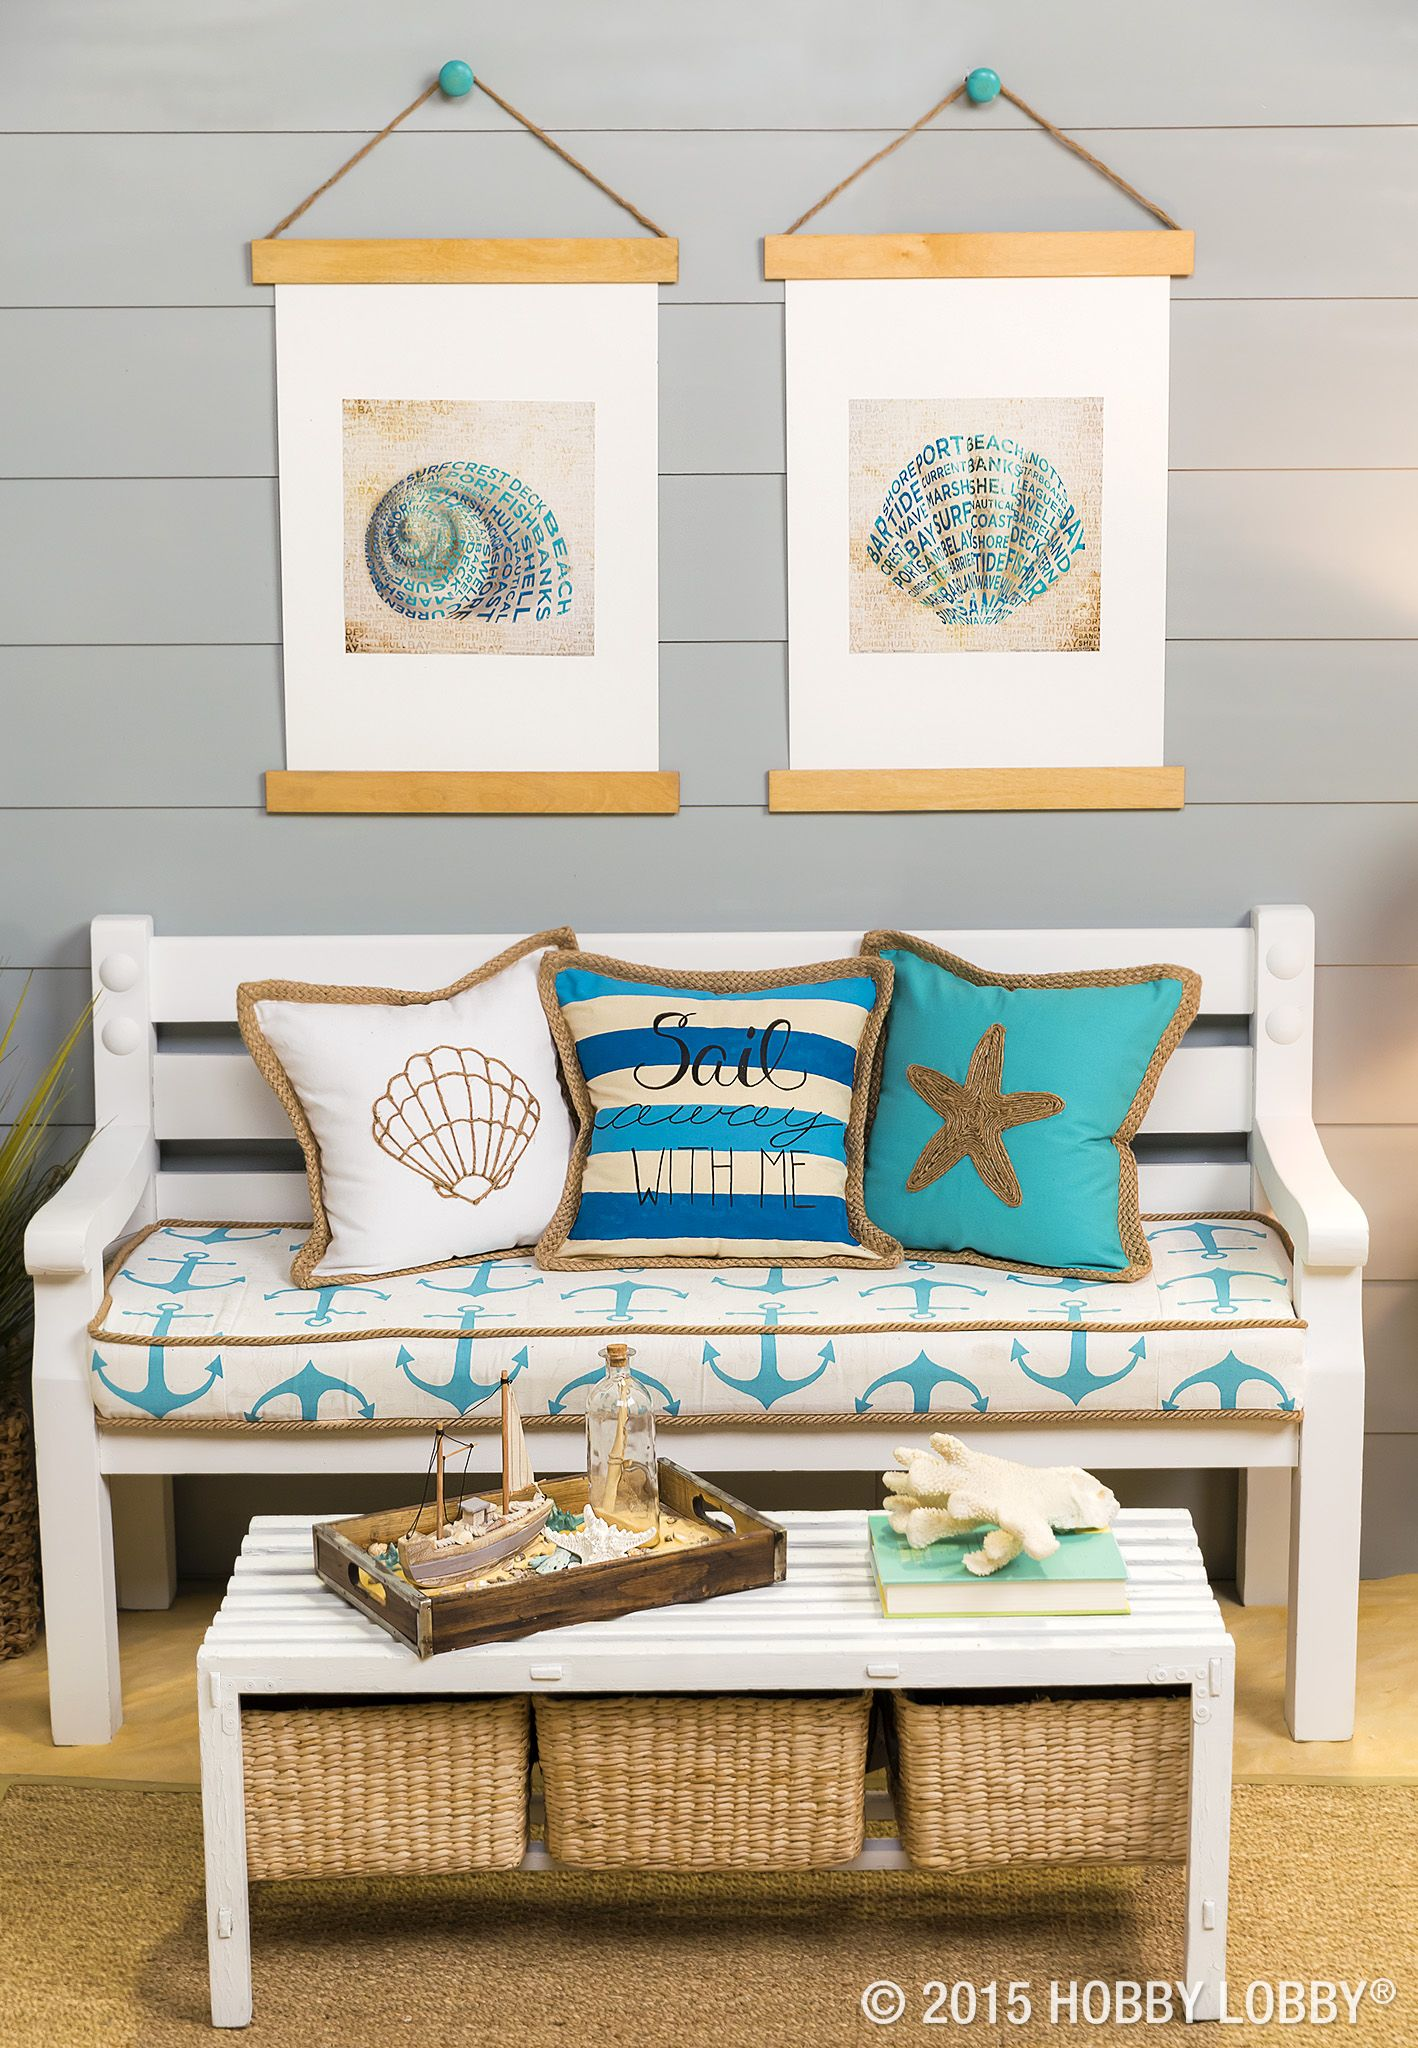 Who Would Have Thought That Jute Could Transform Plain Pillows Into Nautical Masterpieces